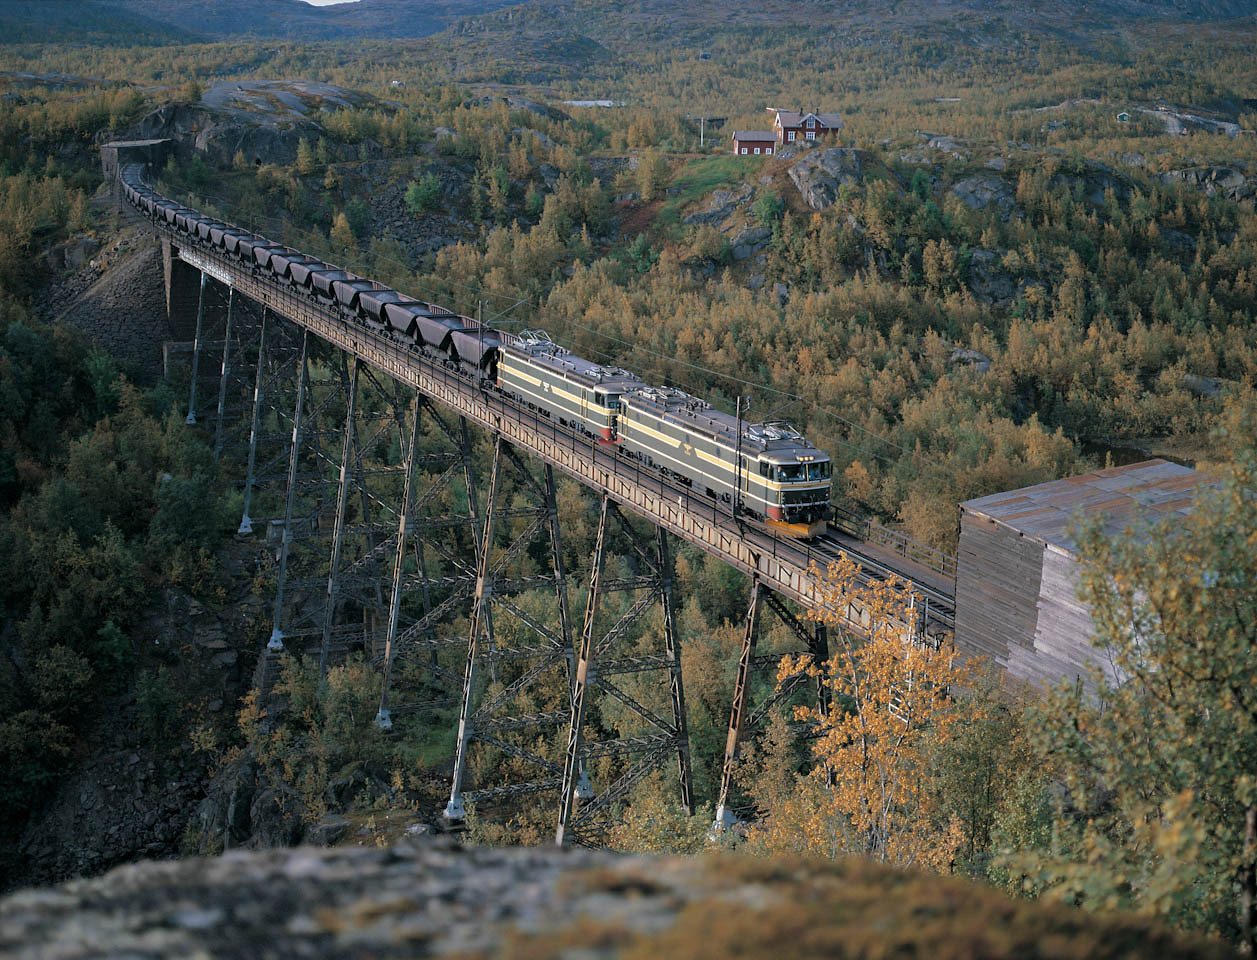 NSB El 15 Uad Norddal bridge 1986-29-08 by Waldemar Mathiesen